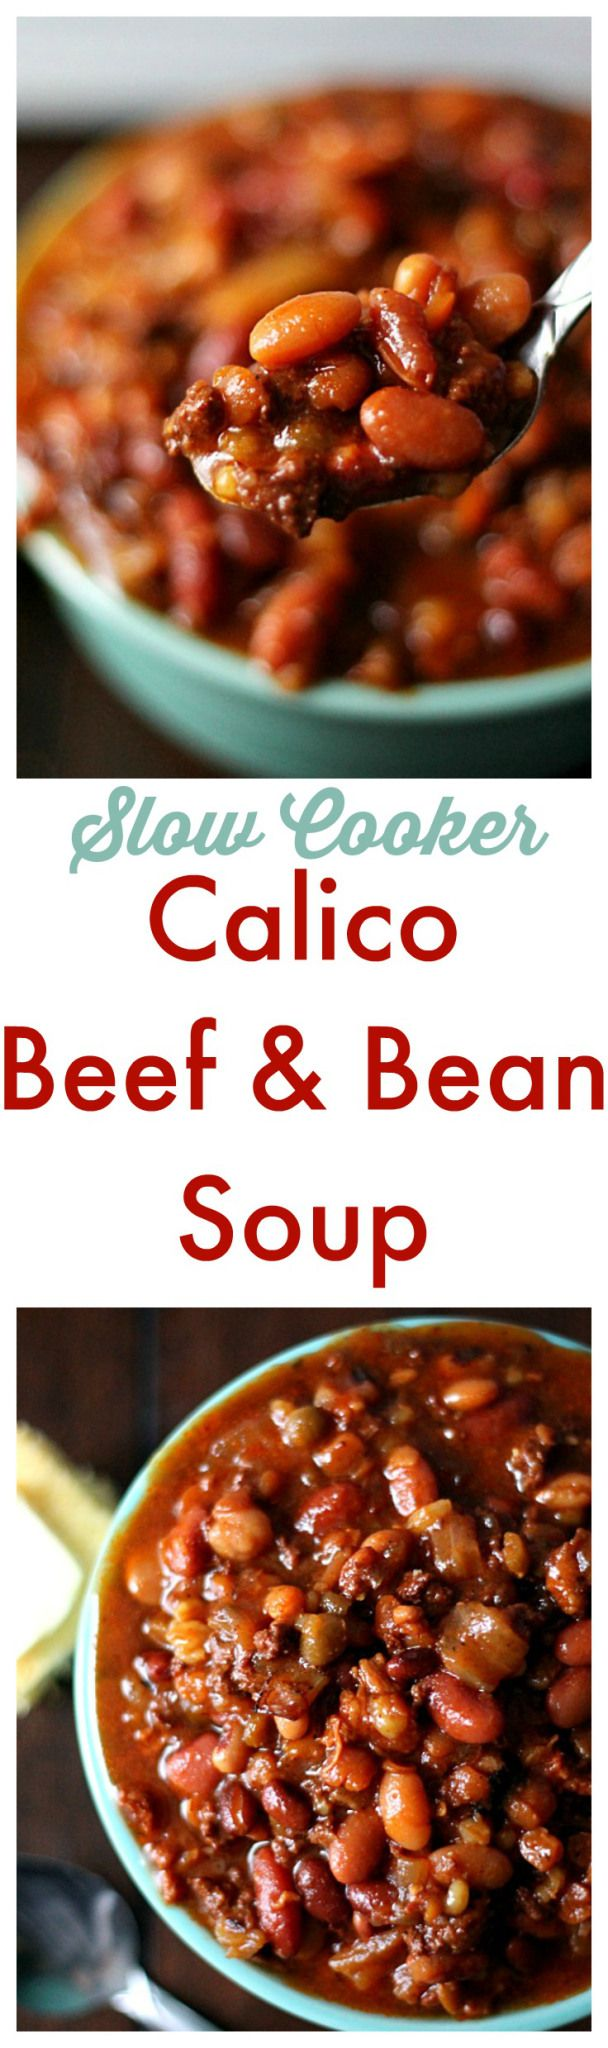 Slow Cooker Calico Beef & Bean Soup. Delicious & hearty soup made ...